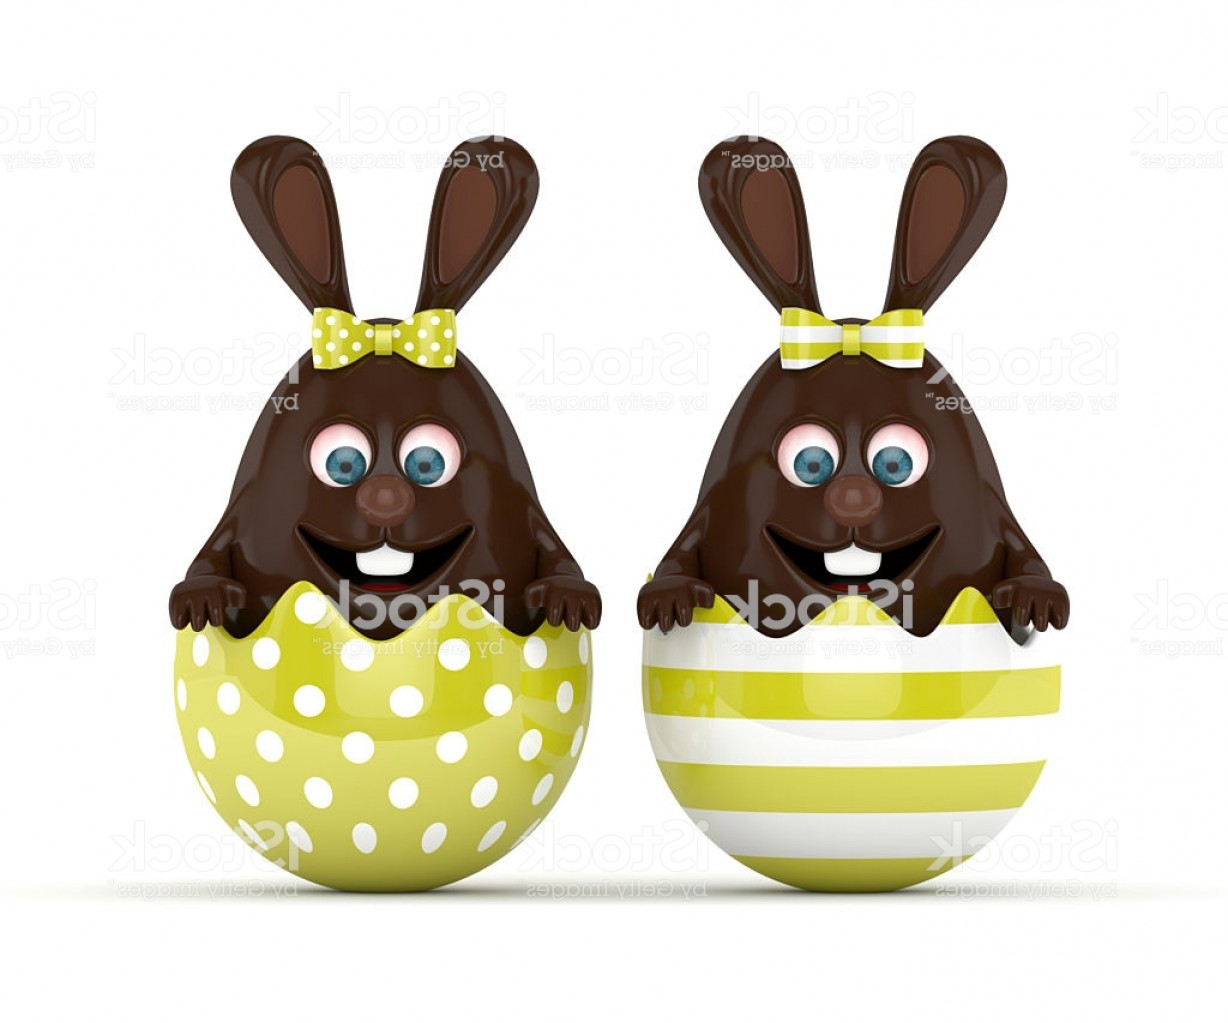 Chocolate Bunny Vector: D Rendering Of Easter Chocolate Bunnies In Egg Shells Gm